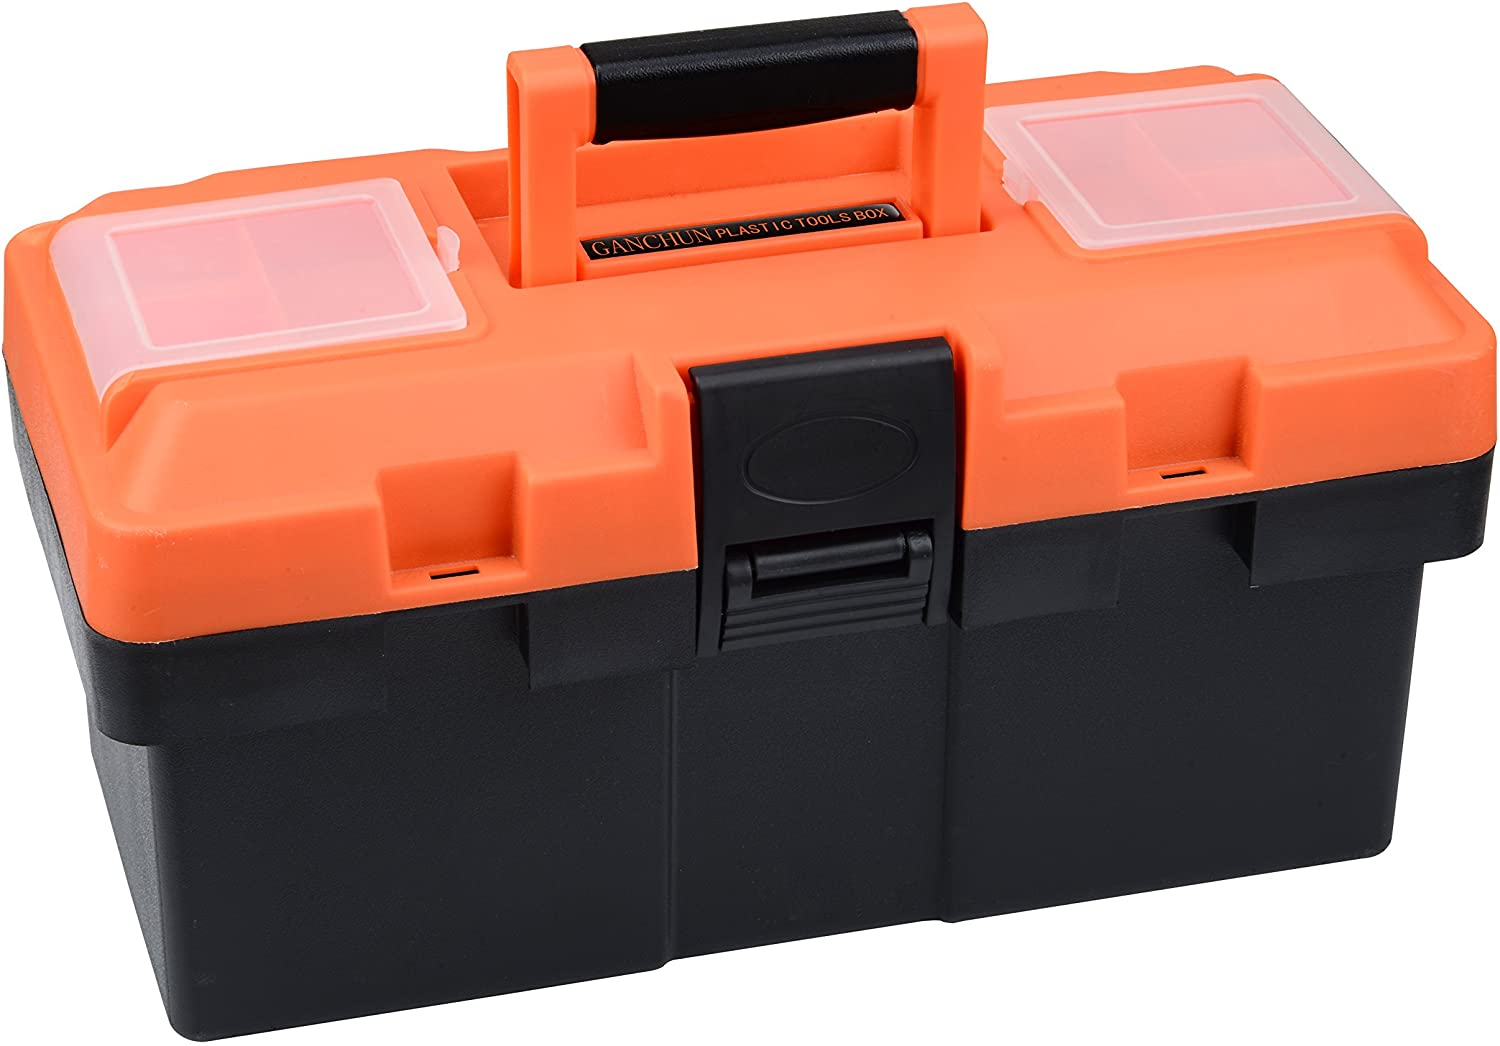 Plastic Tool Box, 14 -inch Portable Tool Box Plastic Toolbox with Removable Tool Tray and Detachable Tool Kit For Craft Storage, Household: Home Improvement